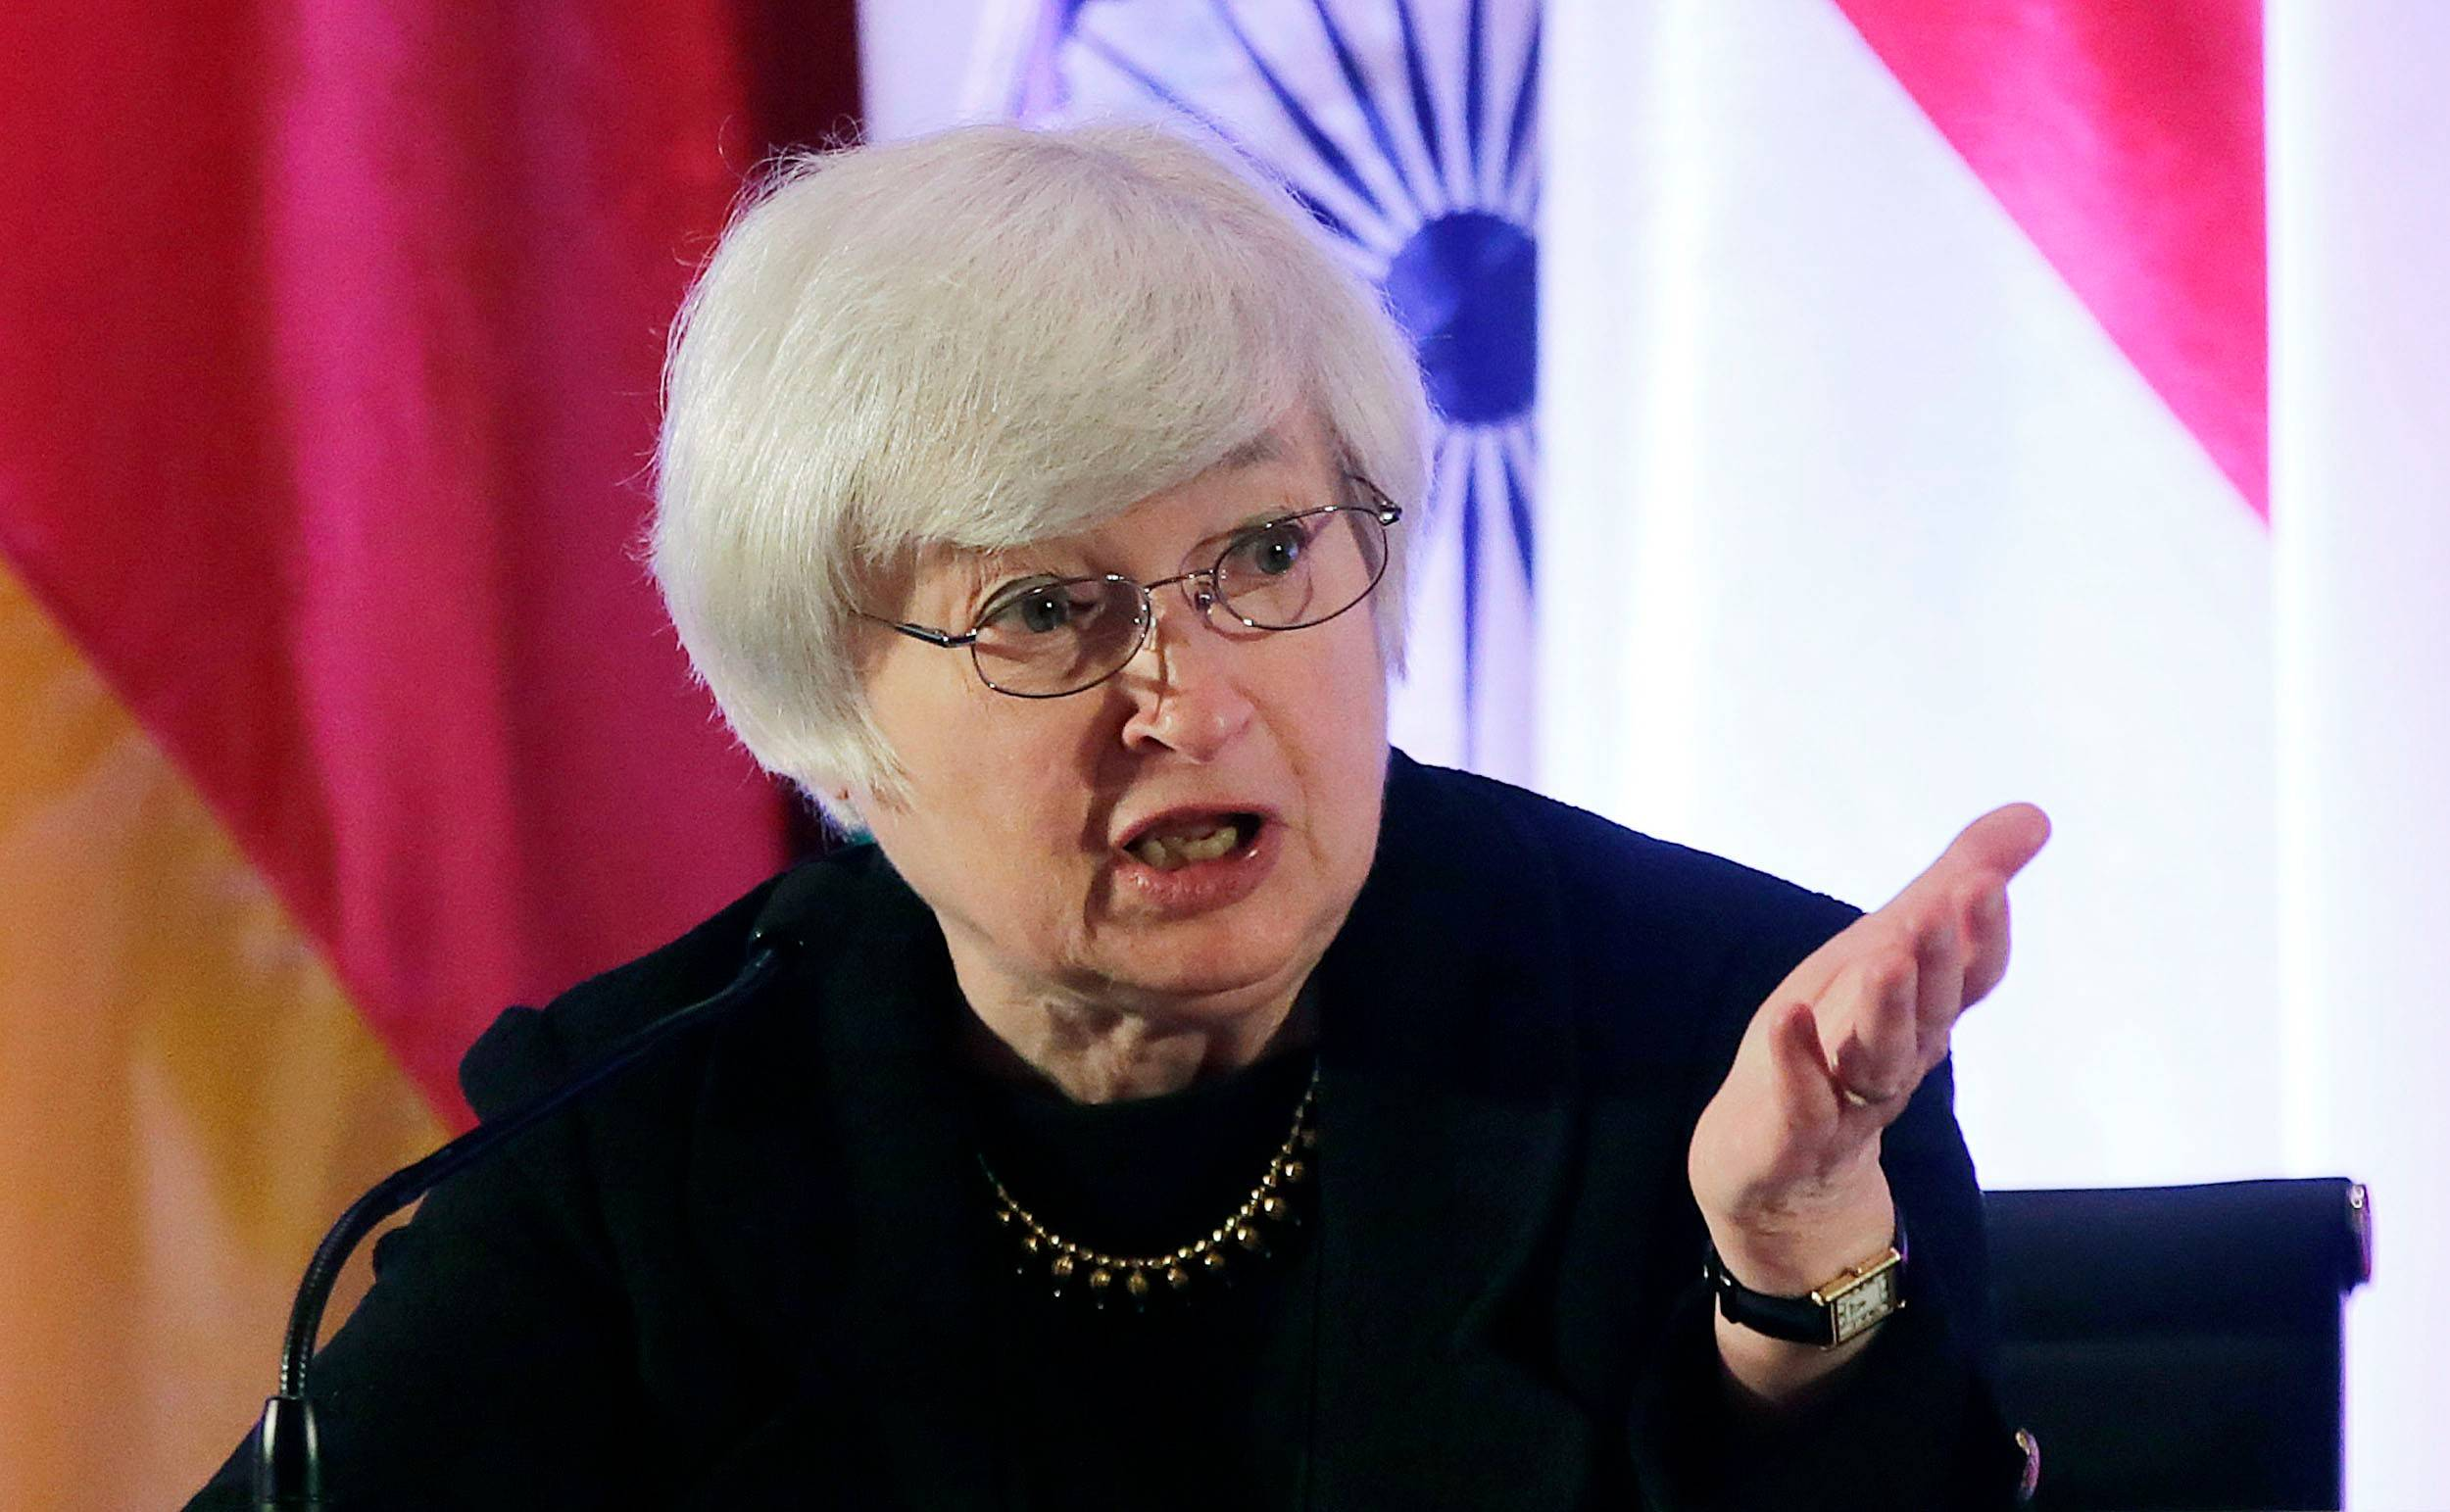 When Janet Yellen faces a Senate hearing Thursday on her nomination to lead the Federal Reserve, she is sure to face skepticism from Republicans who say the Fed's policies may be swelling asset bubbles or raising the risk of high inflation.